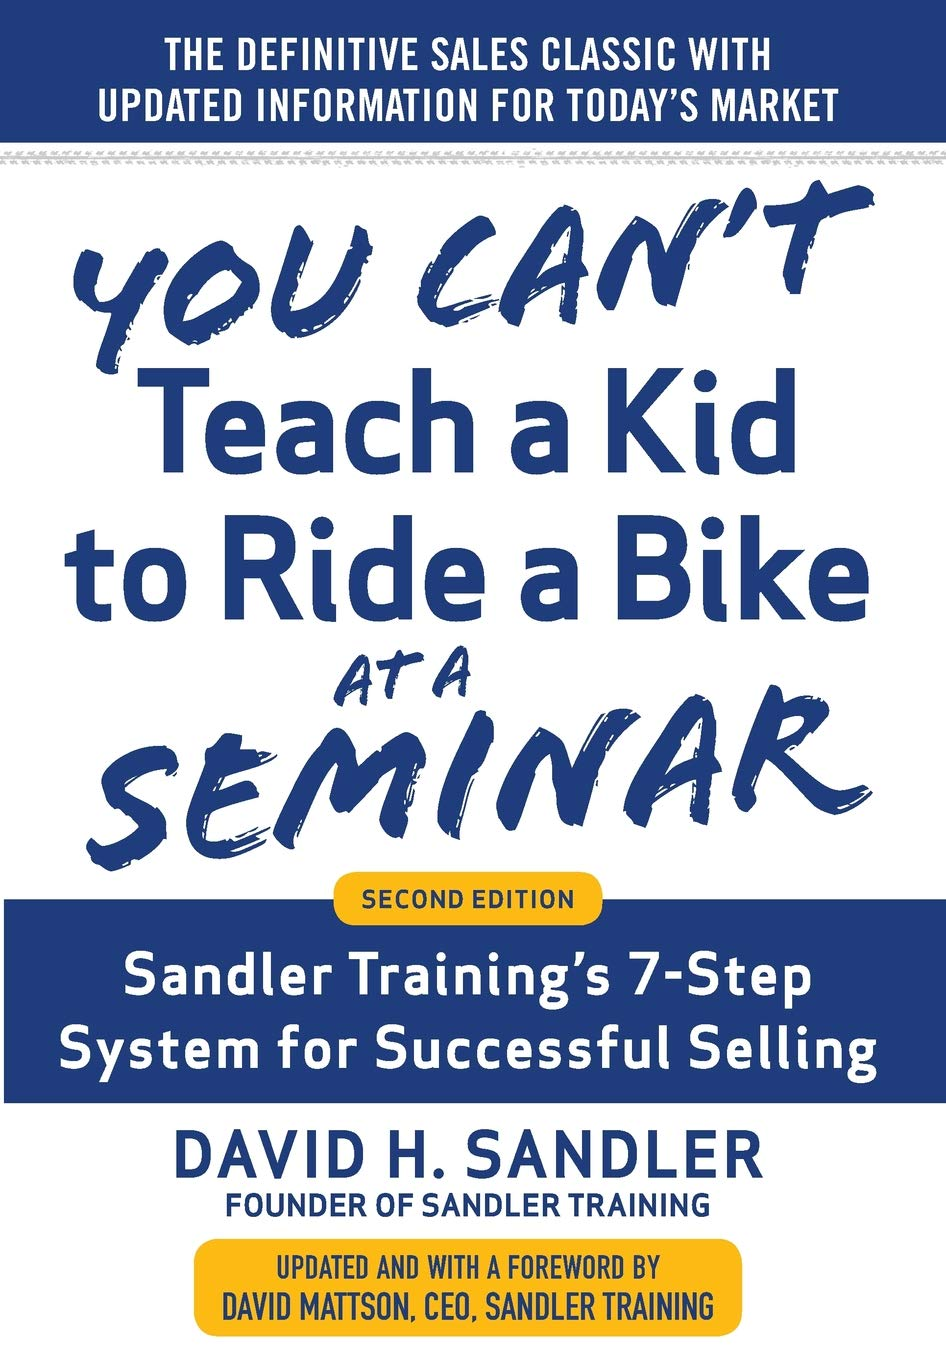 Sandler Training's 7-Step System for Successful Selling